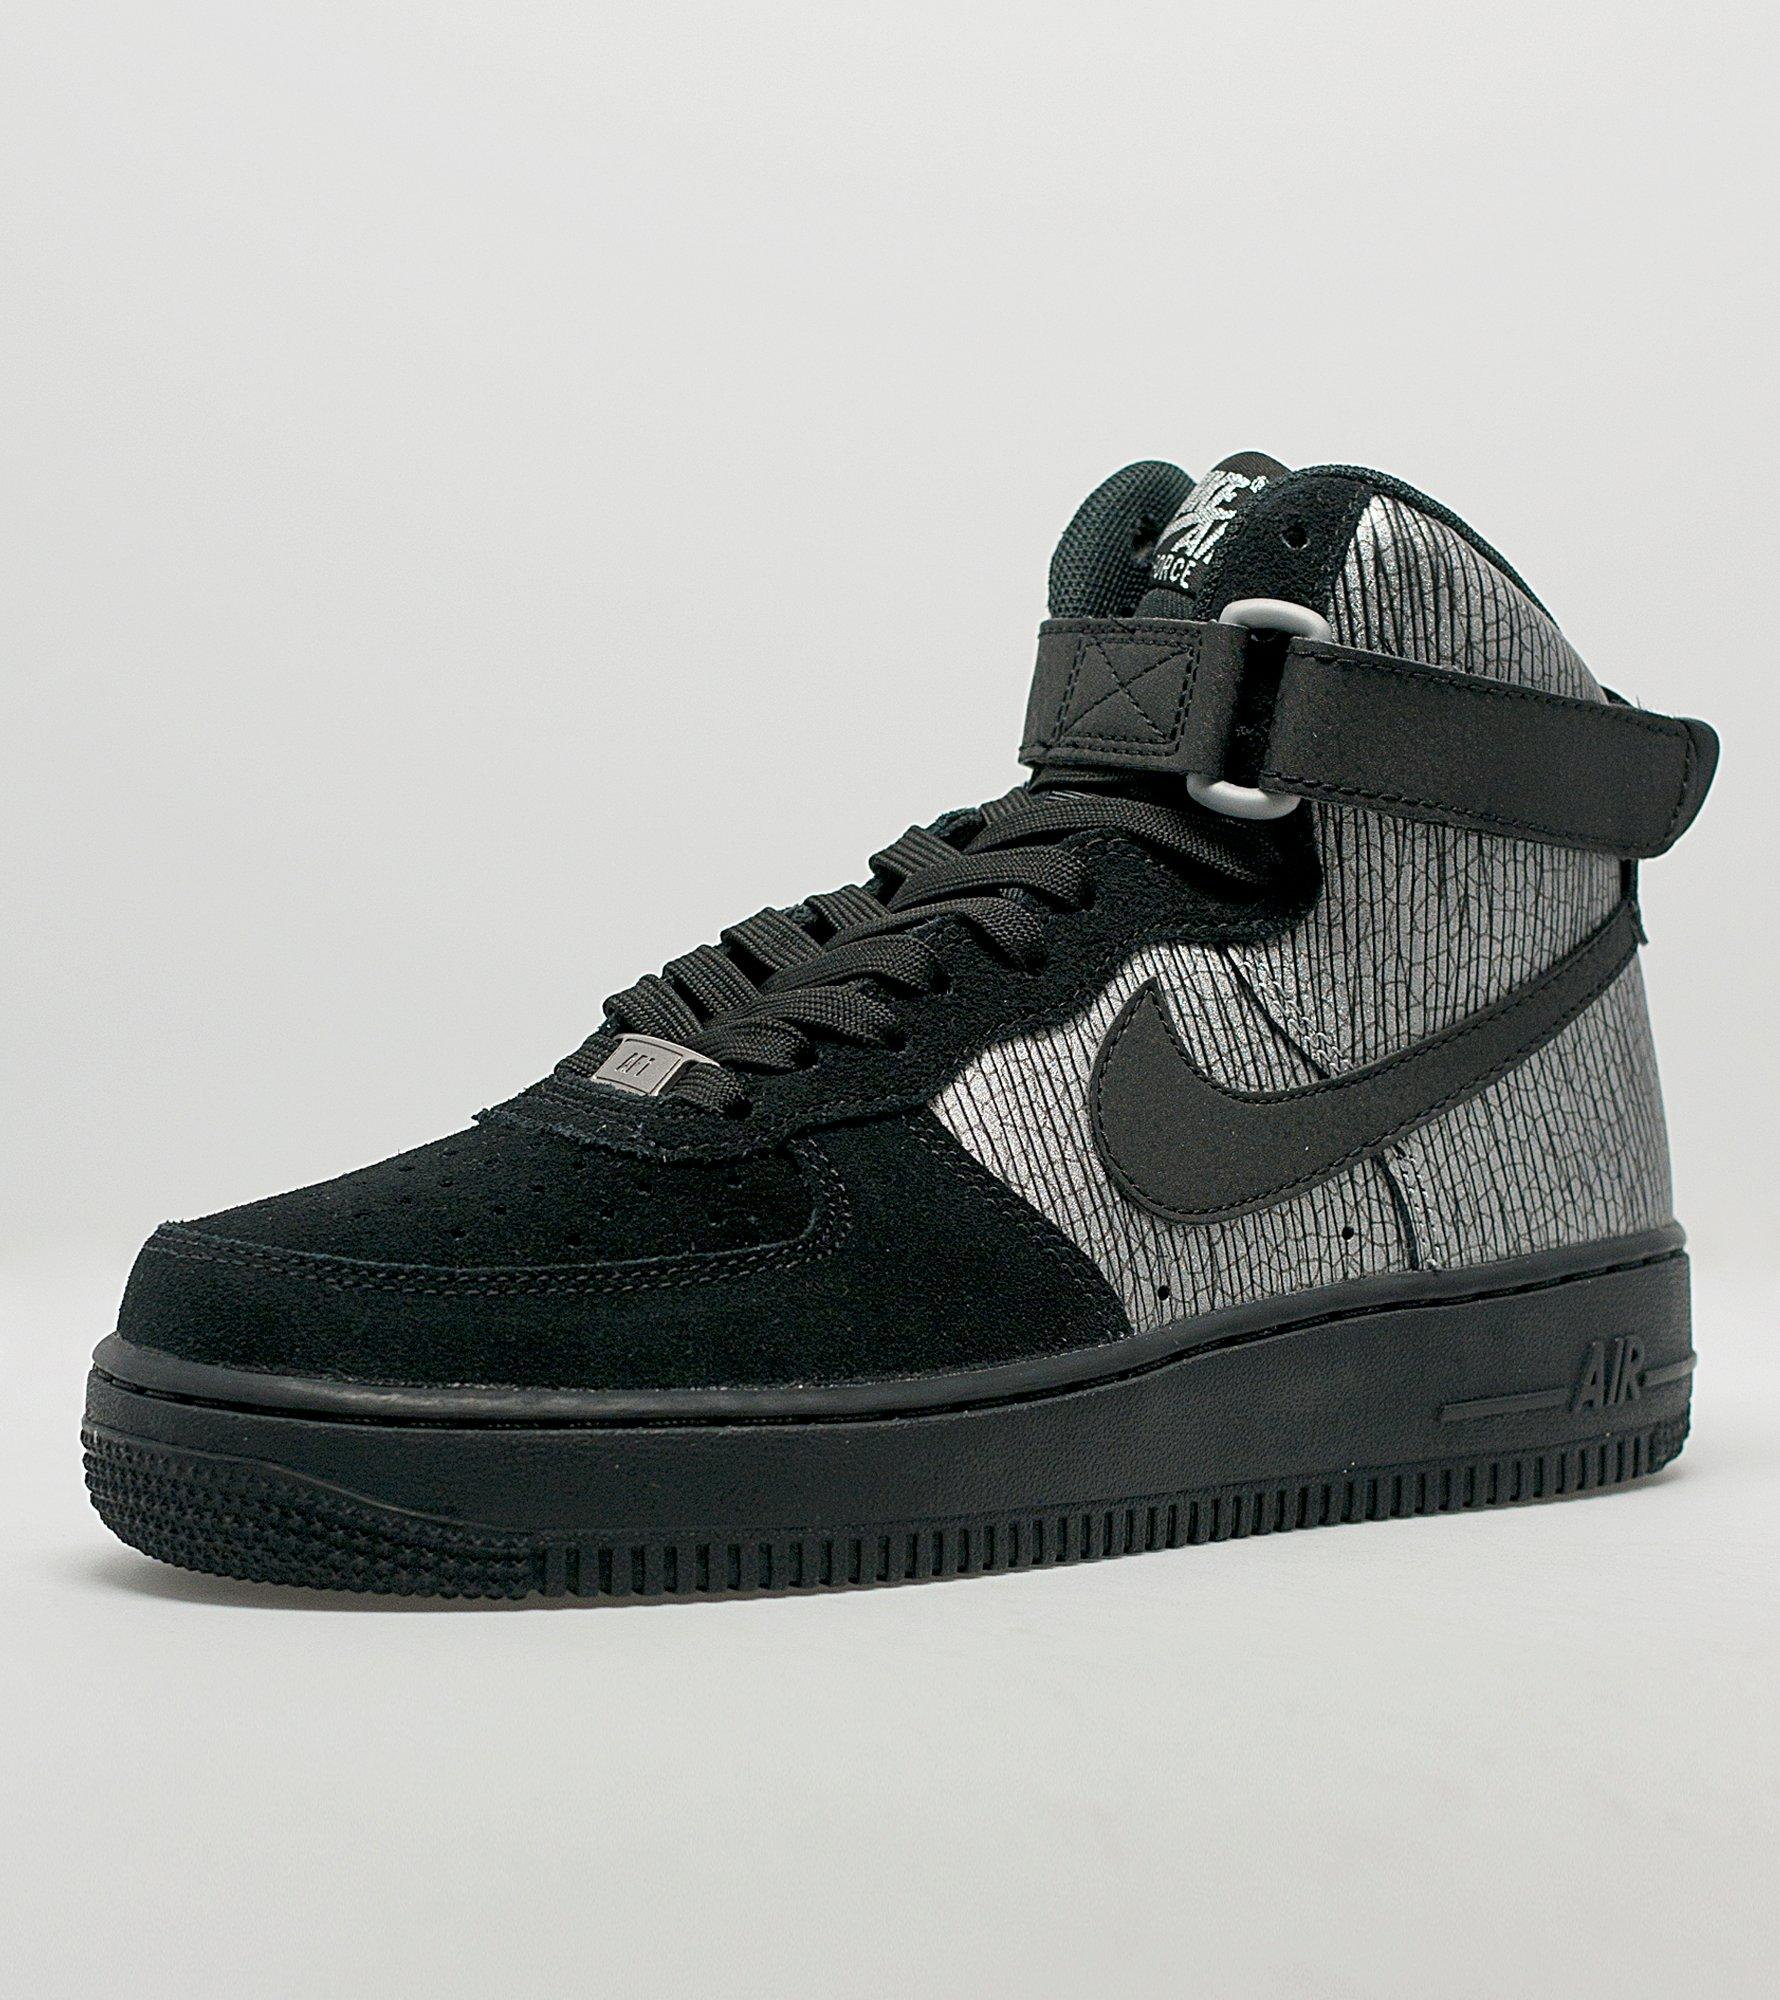 nike air force 1 mid prm womens a tale of two citiess